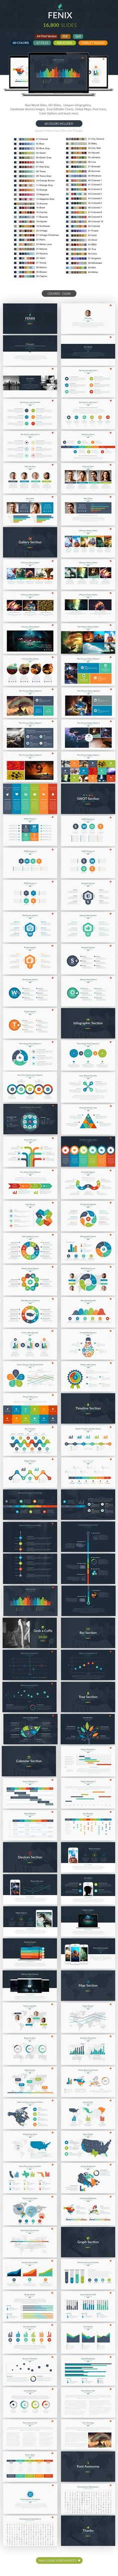 Maxpro business plan powerpoint presentation template fenix powerpoint presentation toneelgroepblik Image collections